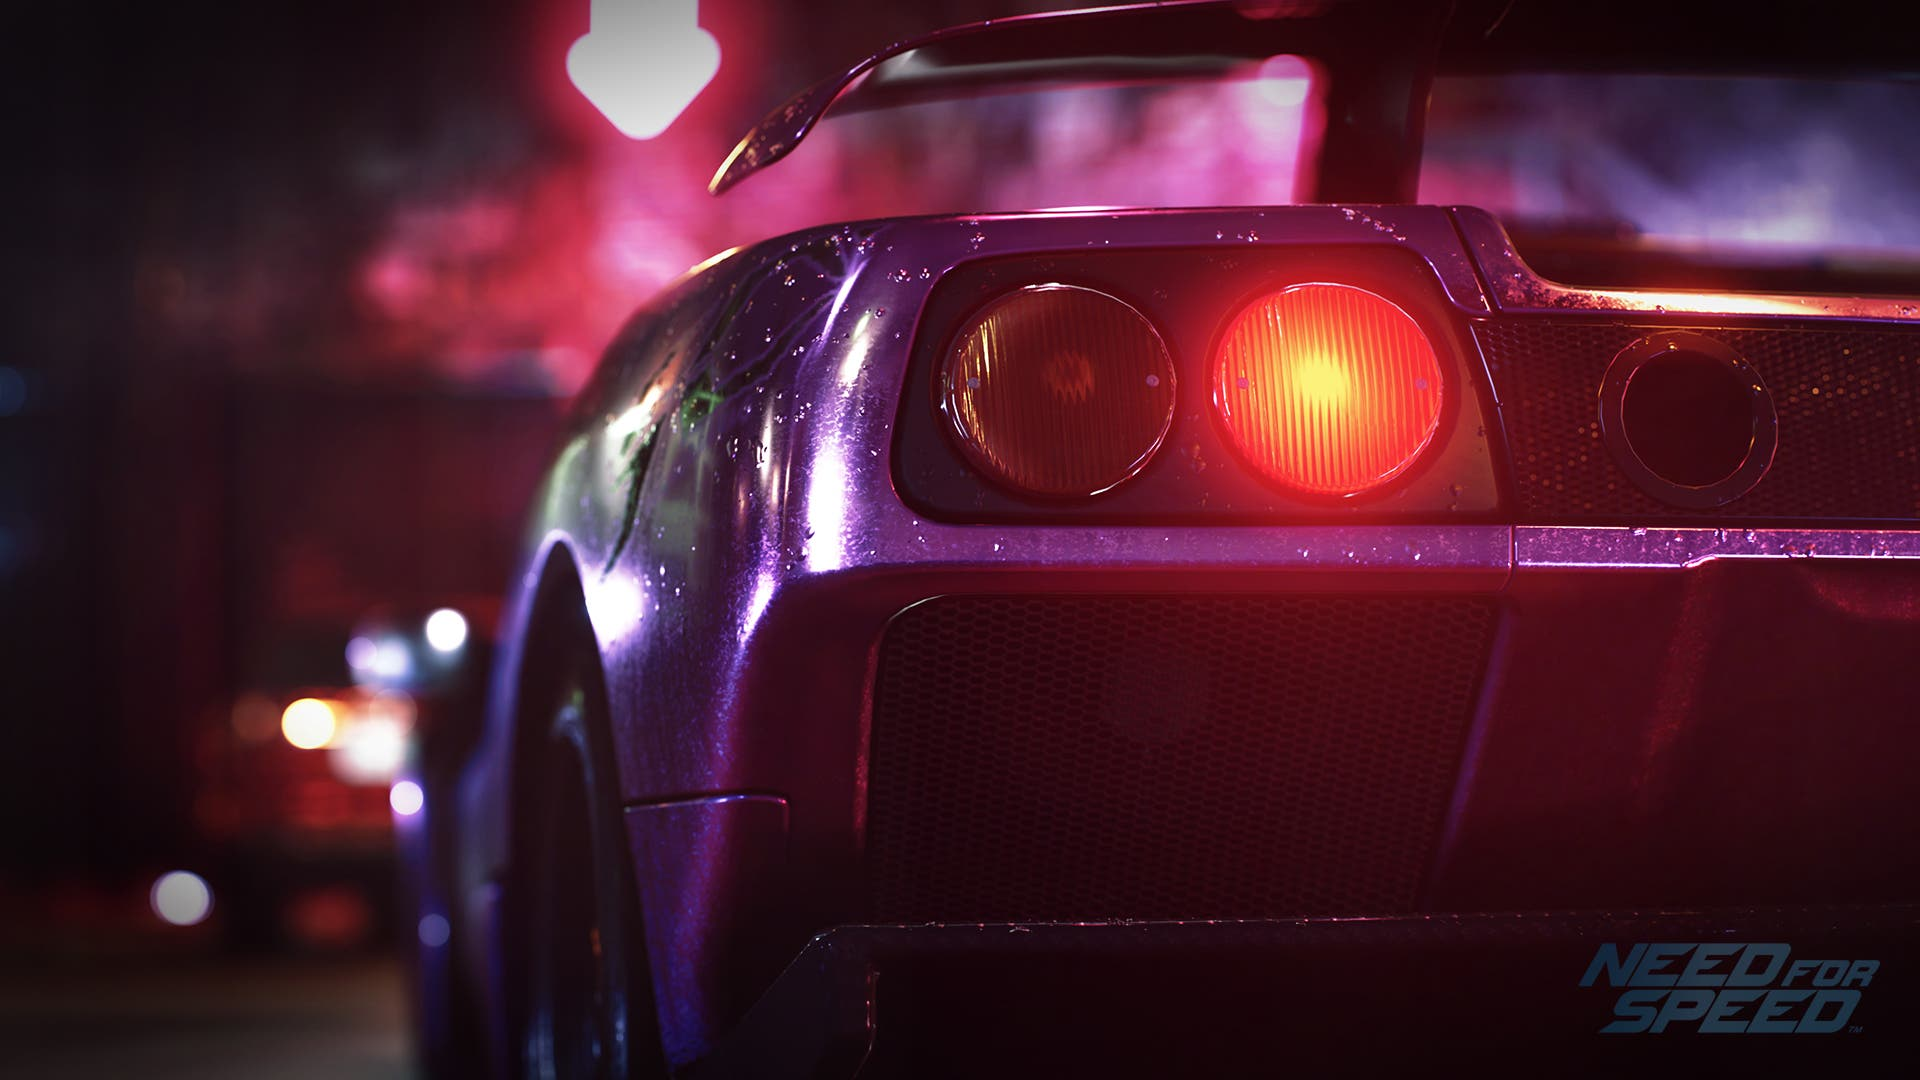 NeedForSpeed-review(5)